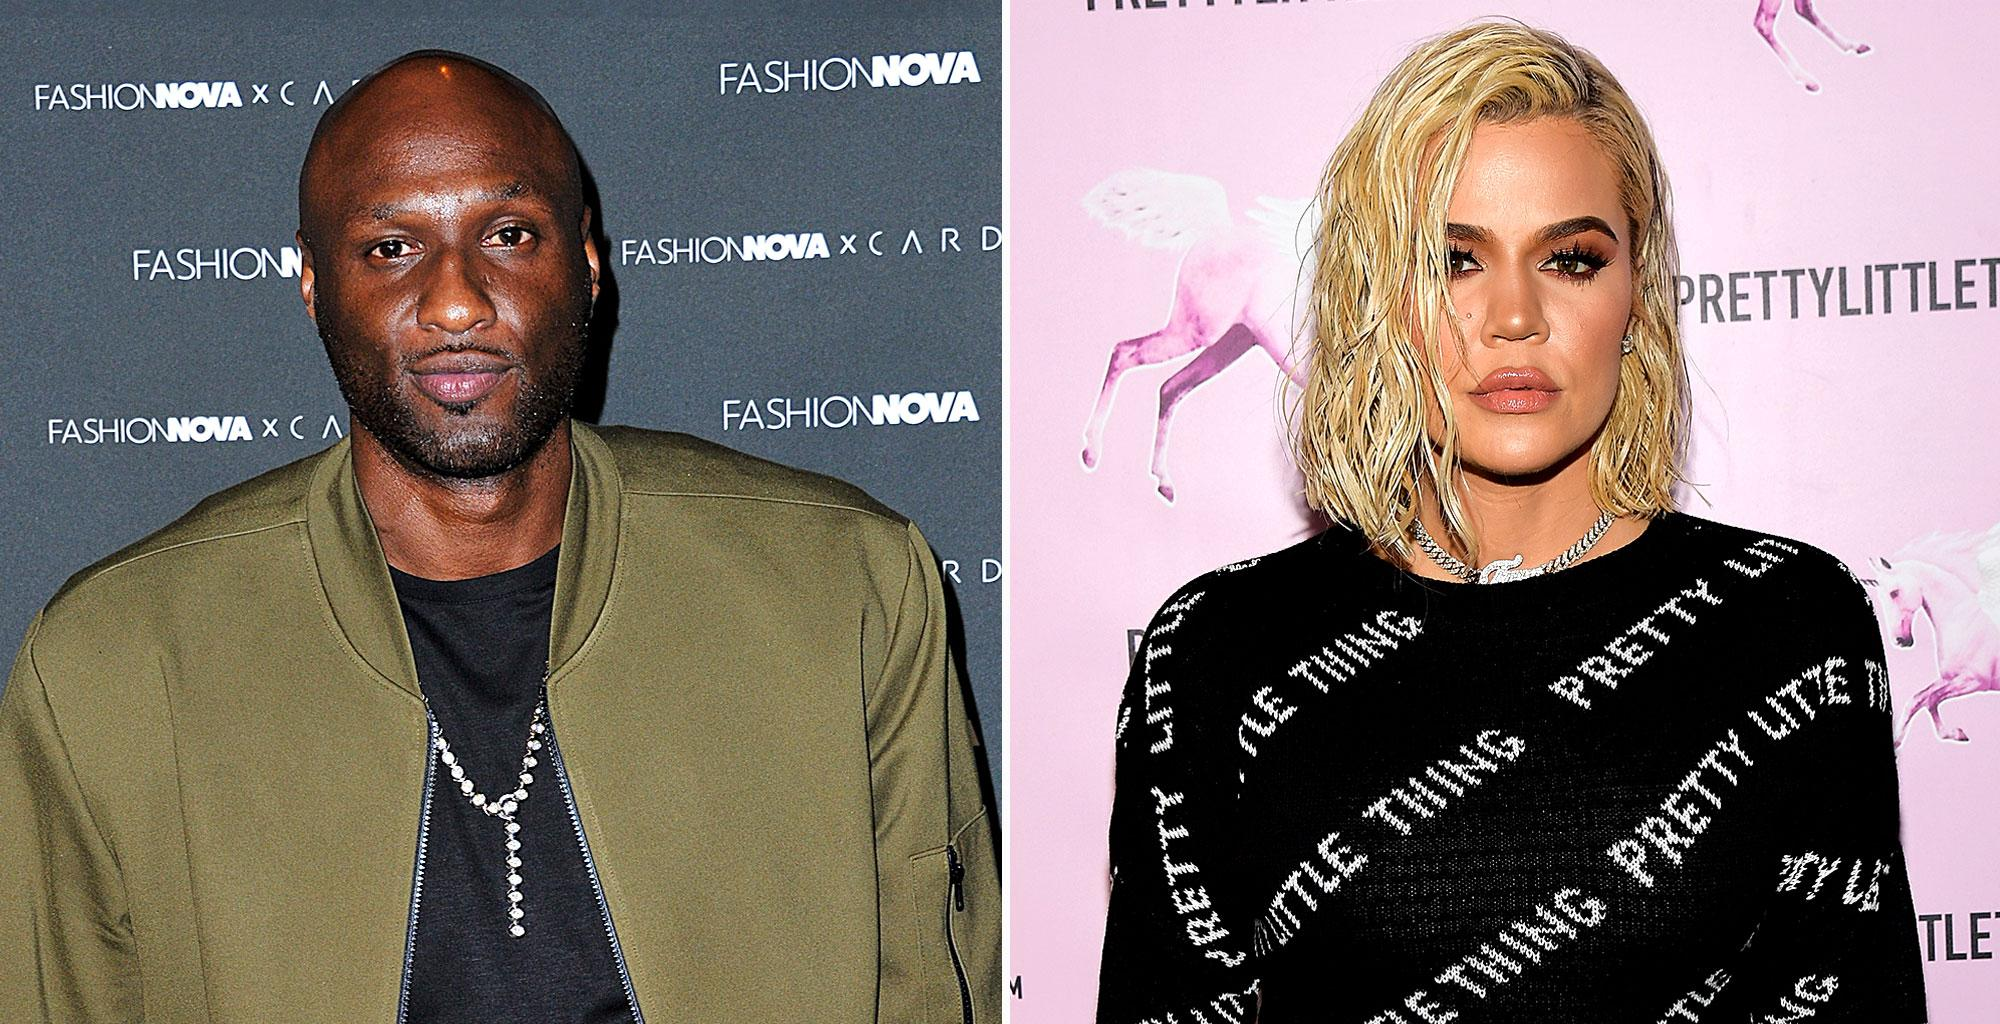 KUWK: Khloe Kardashian Talks About 'Loyalty' In New Cryptic Quote Following Ex-Husband Lamar Odom's Tell-All Release